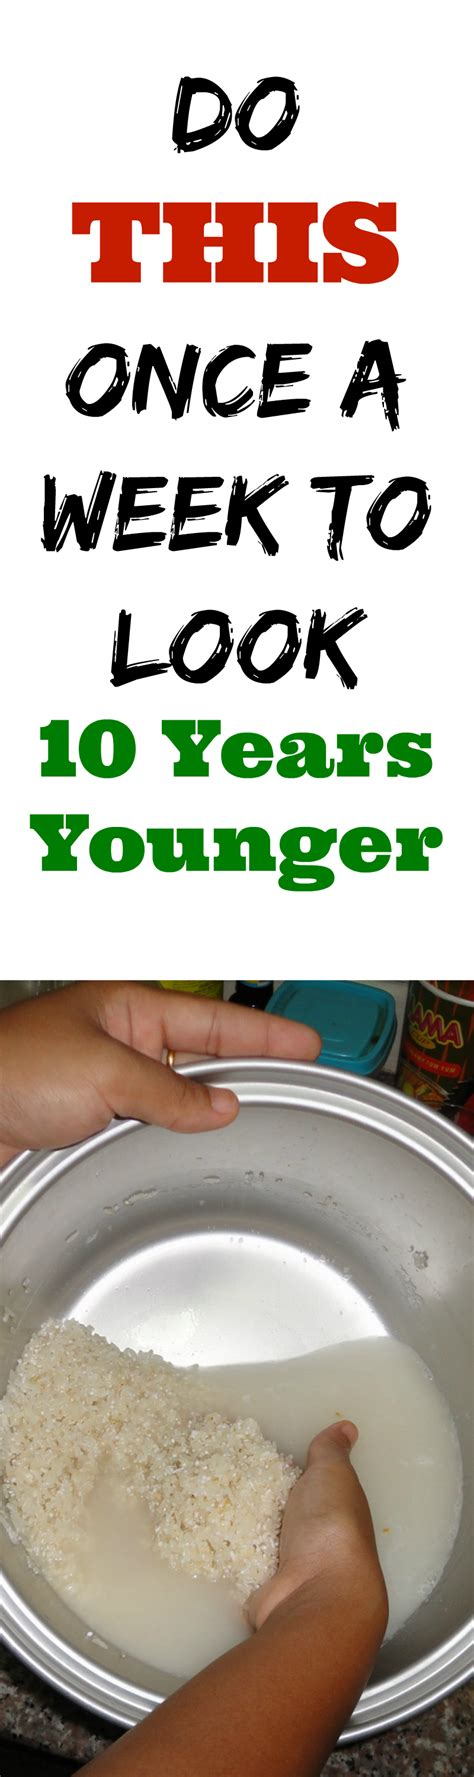 10 Years Younger In 10 Weeks do this once a week to look 10 years younger